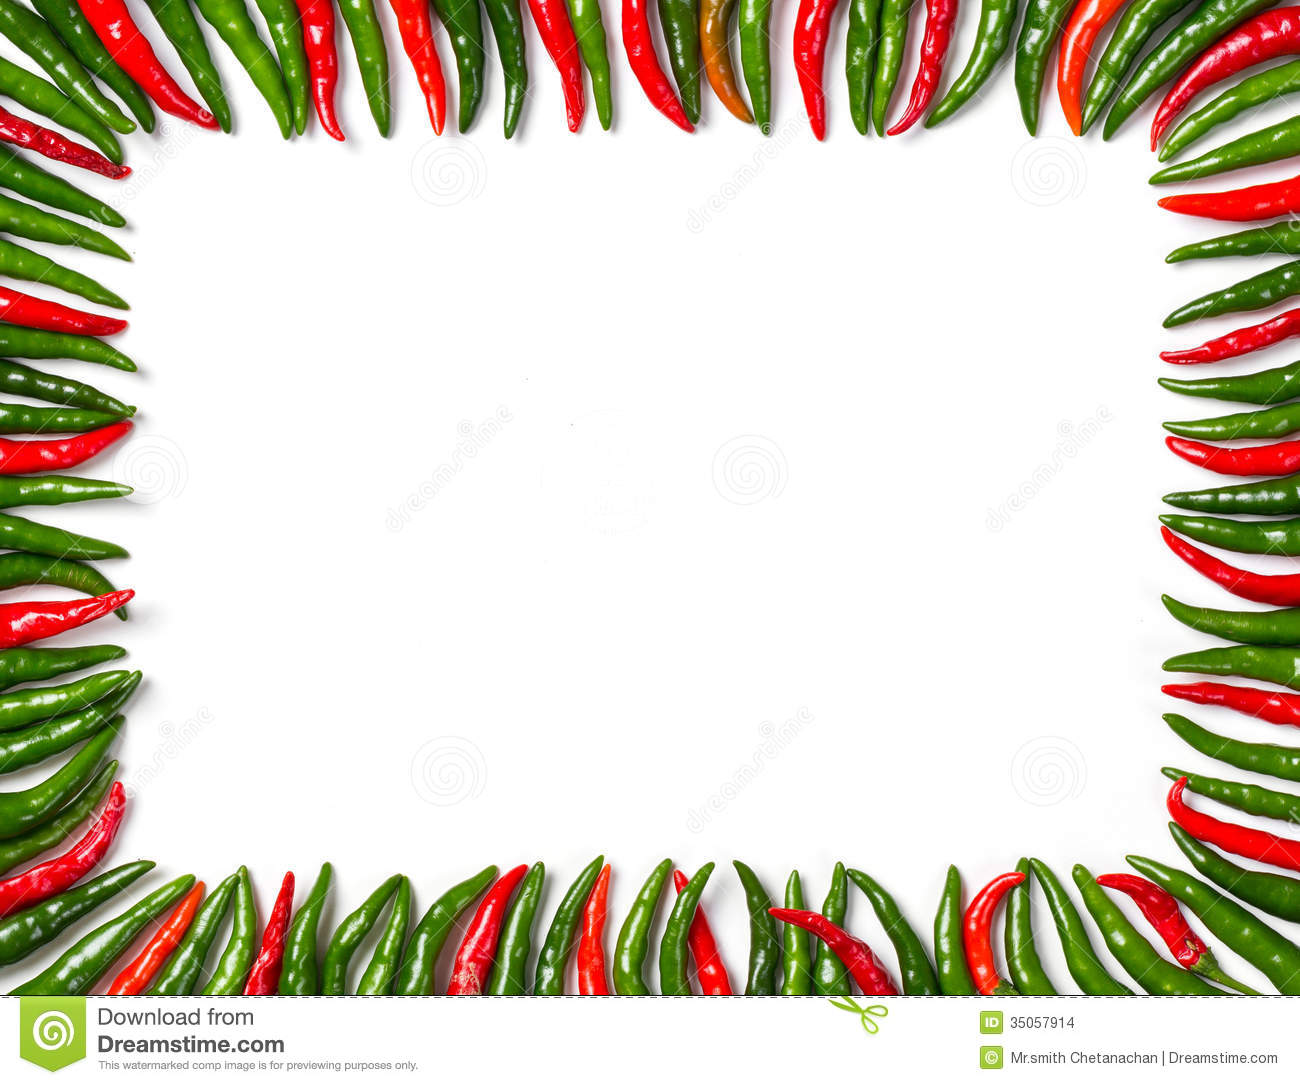 Rectangular Red And Green Bird Chili Frame Stock Images - Image ...